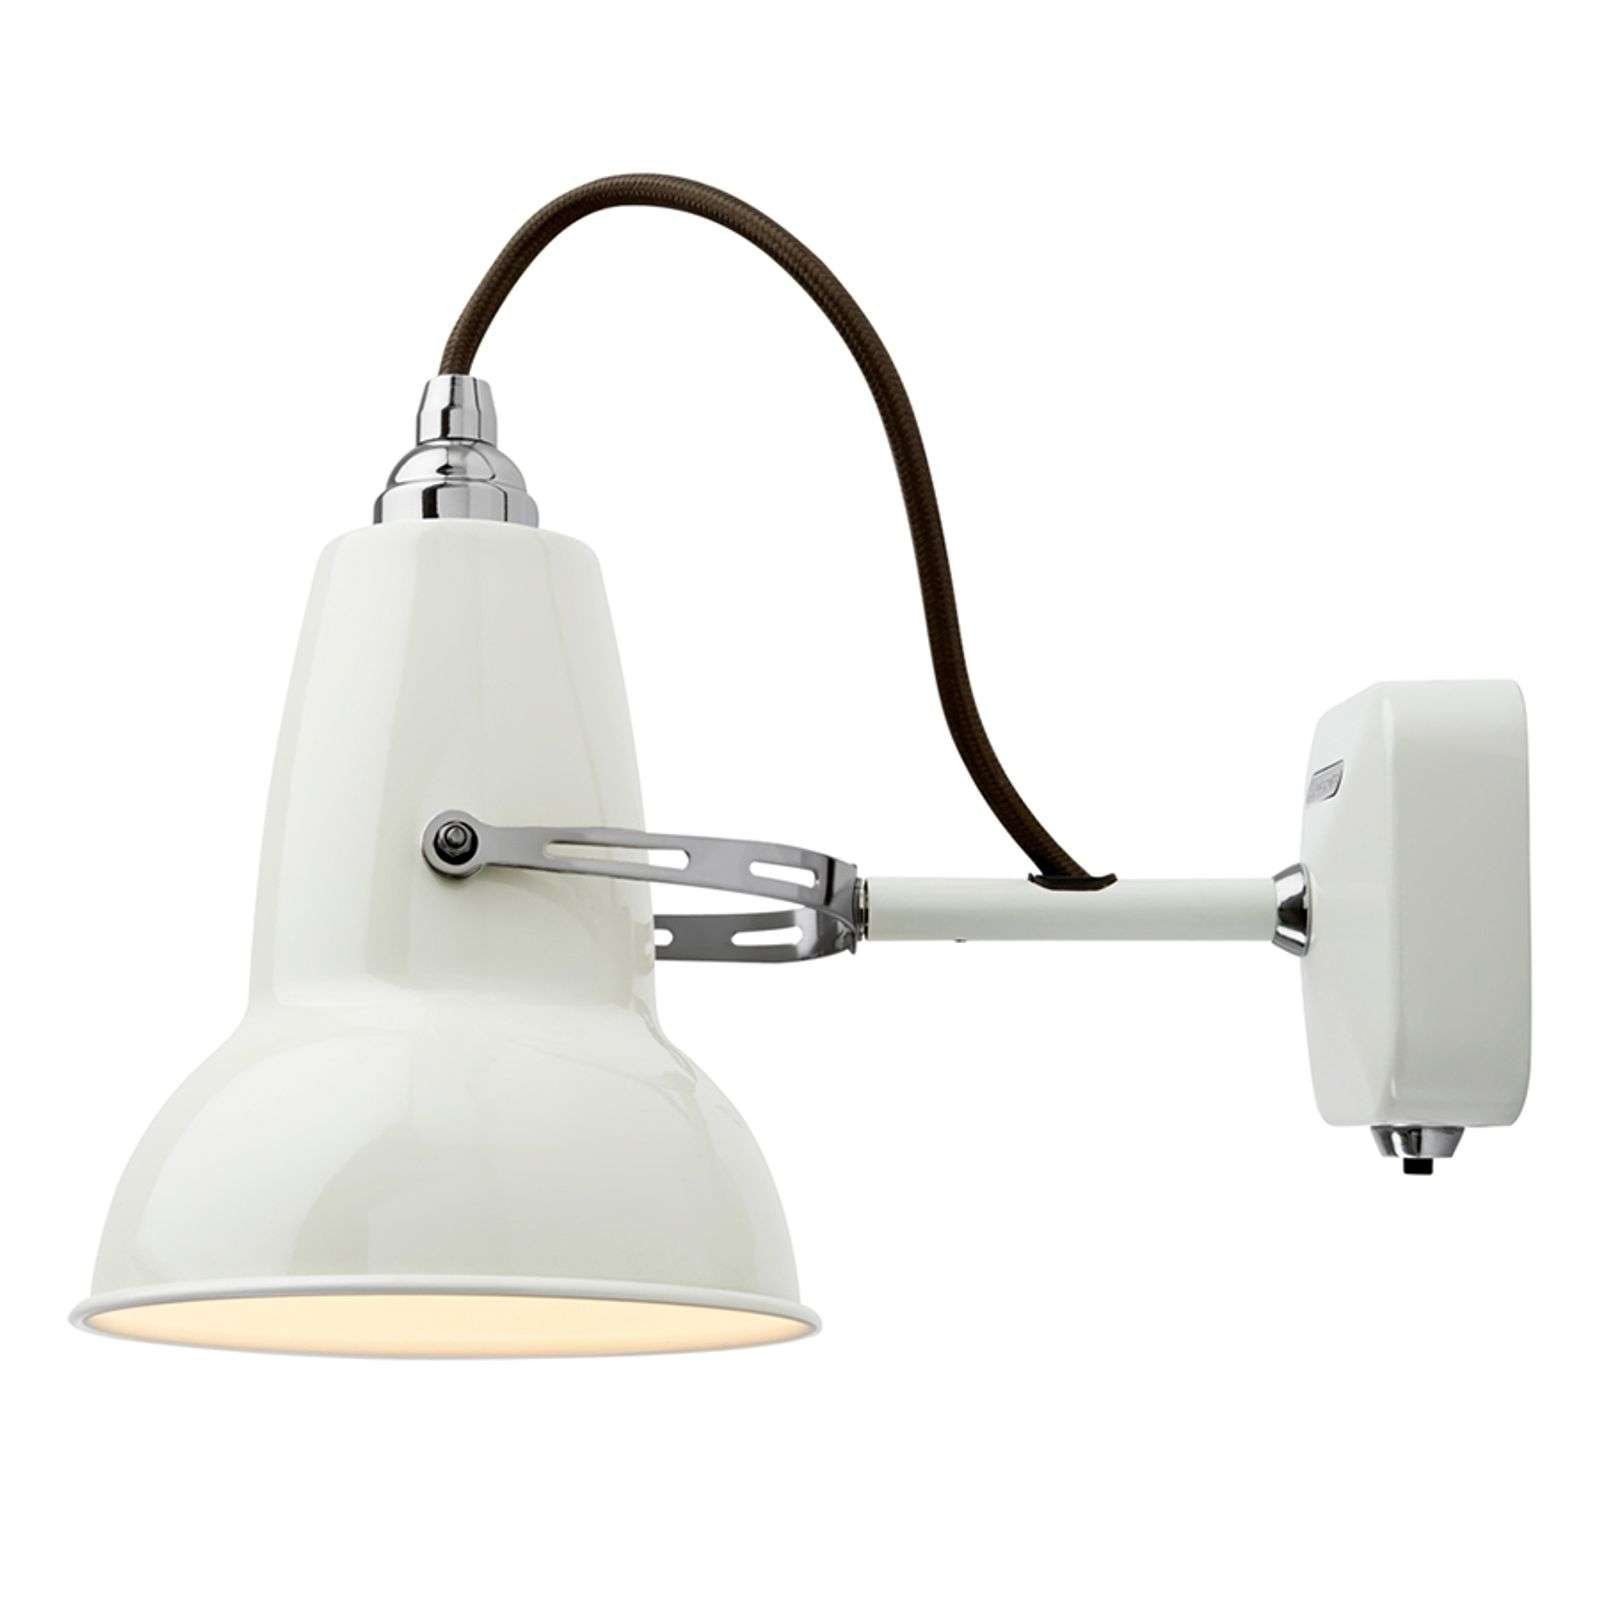 Anglepoise Original 1227 Mini applique blanche